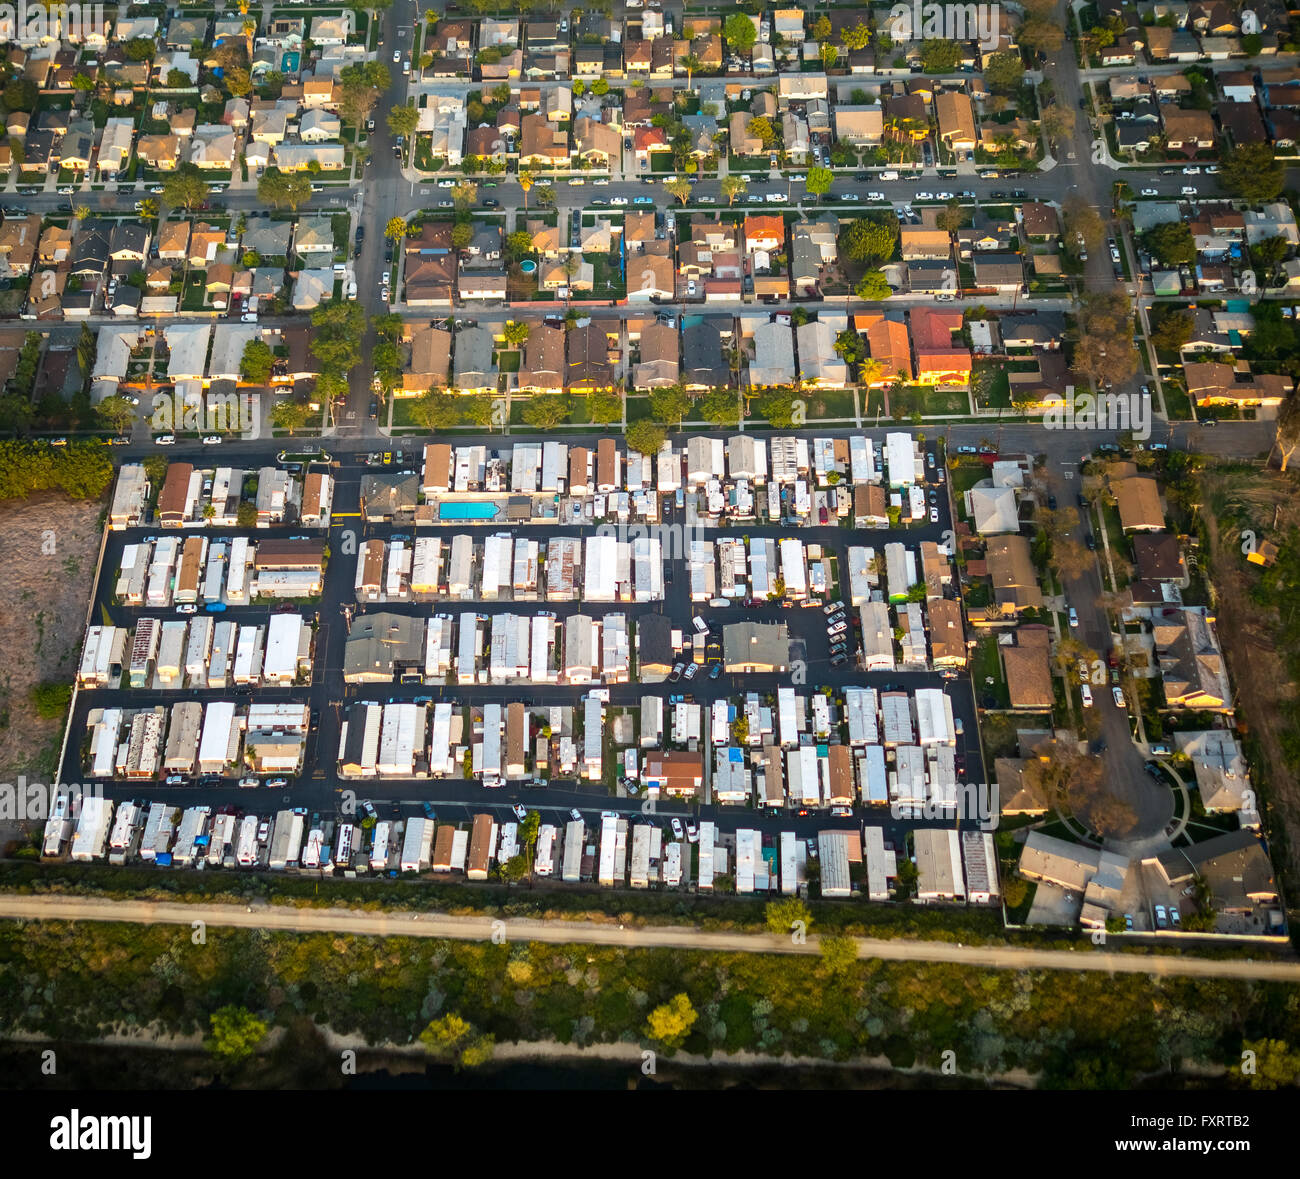 Aerial View Mobile Home Residential Park Oregon Avenue Brook Street Commerce Los Angeles County California USA